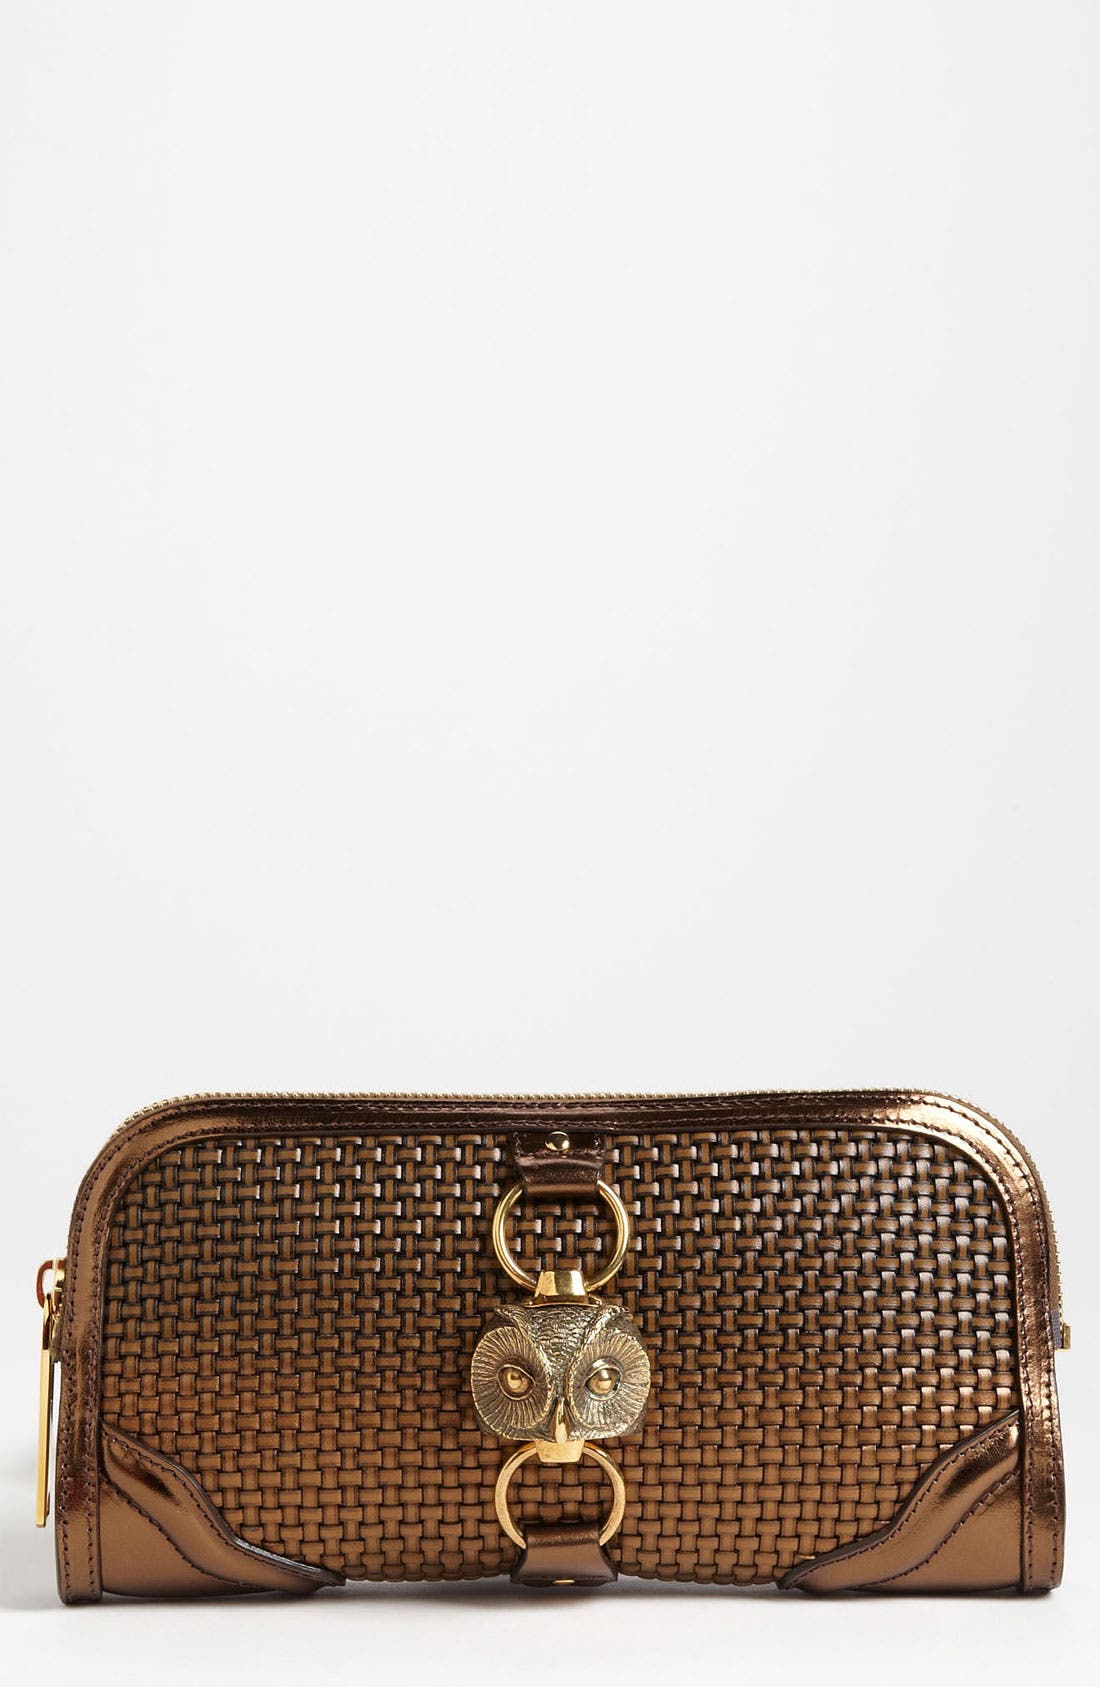 Alternate Image 1 Selected - Burberry 'Metallic Woven' Leather Clutch